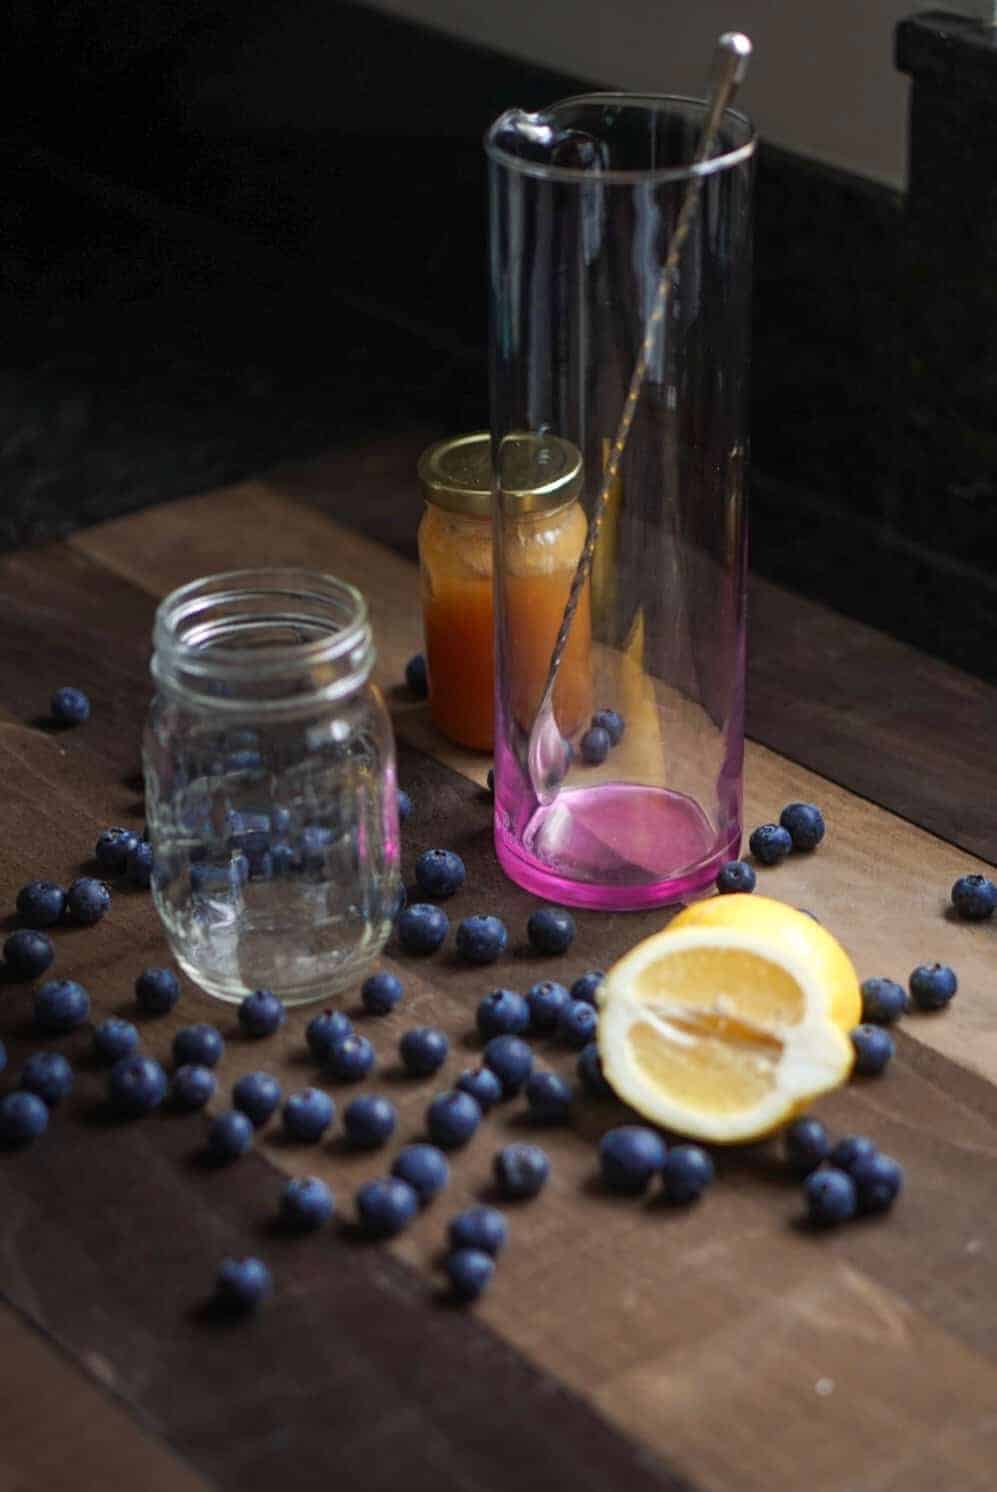 deconstructed lemonade with scattered blueberries, a lemon wedge and glassware